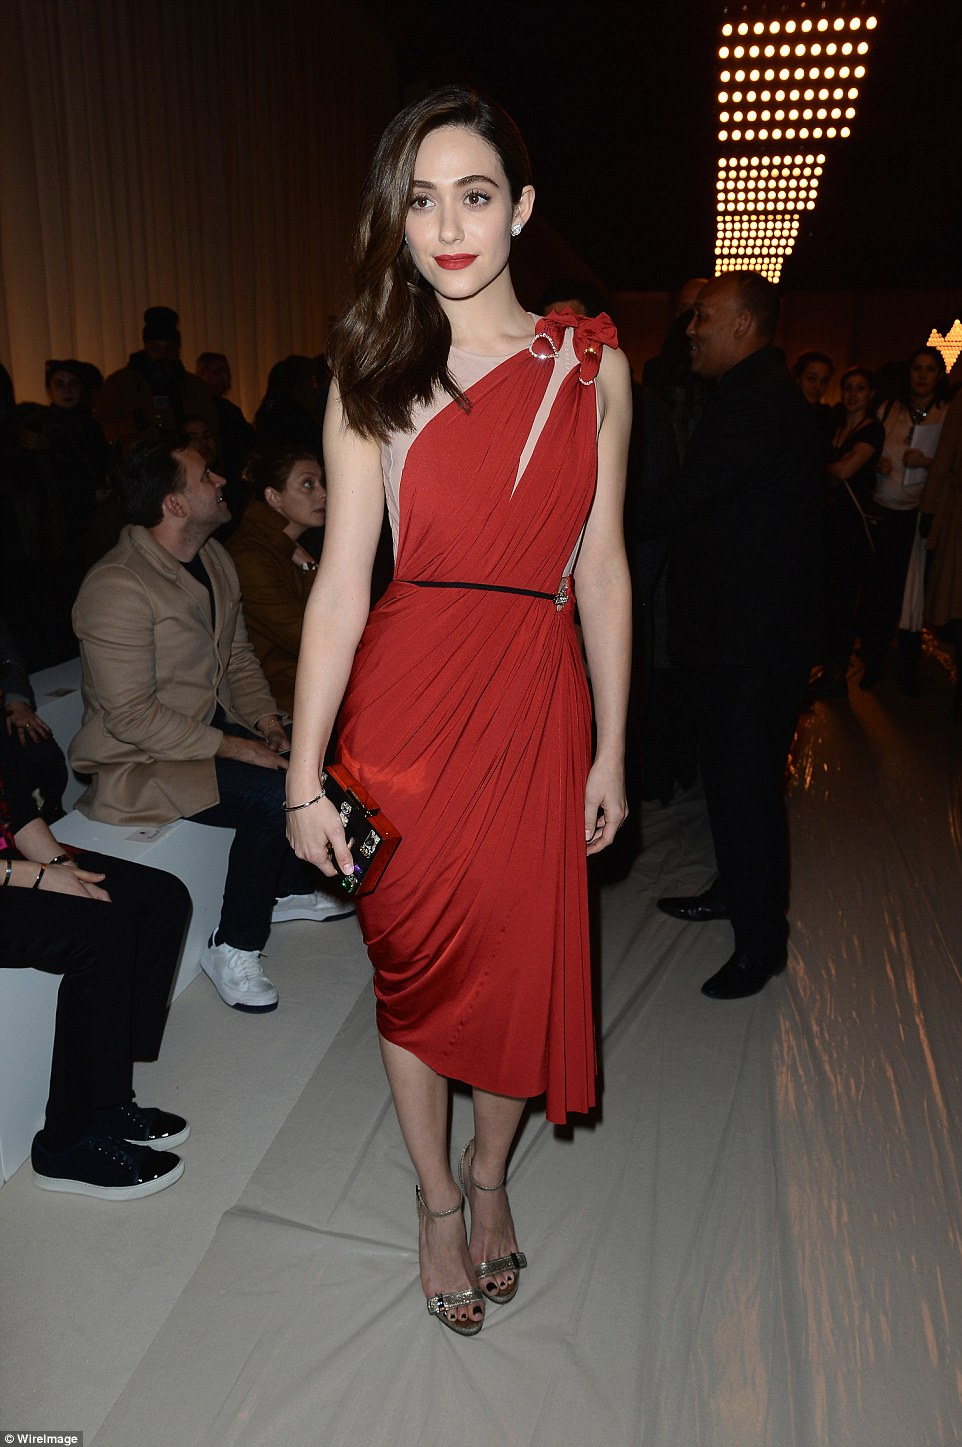 Pulling out the stops: The screen siren was bound to turn heads as she posed up a storm in an intricately crafted gown that was perfect for highlighting her slender silhouette